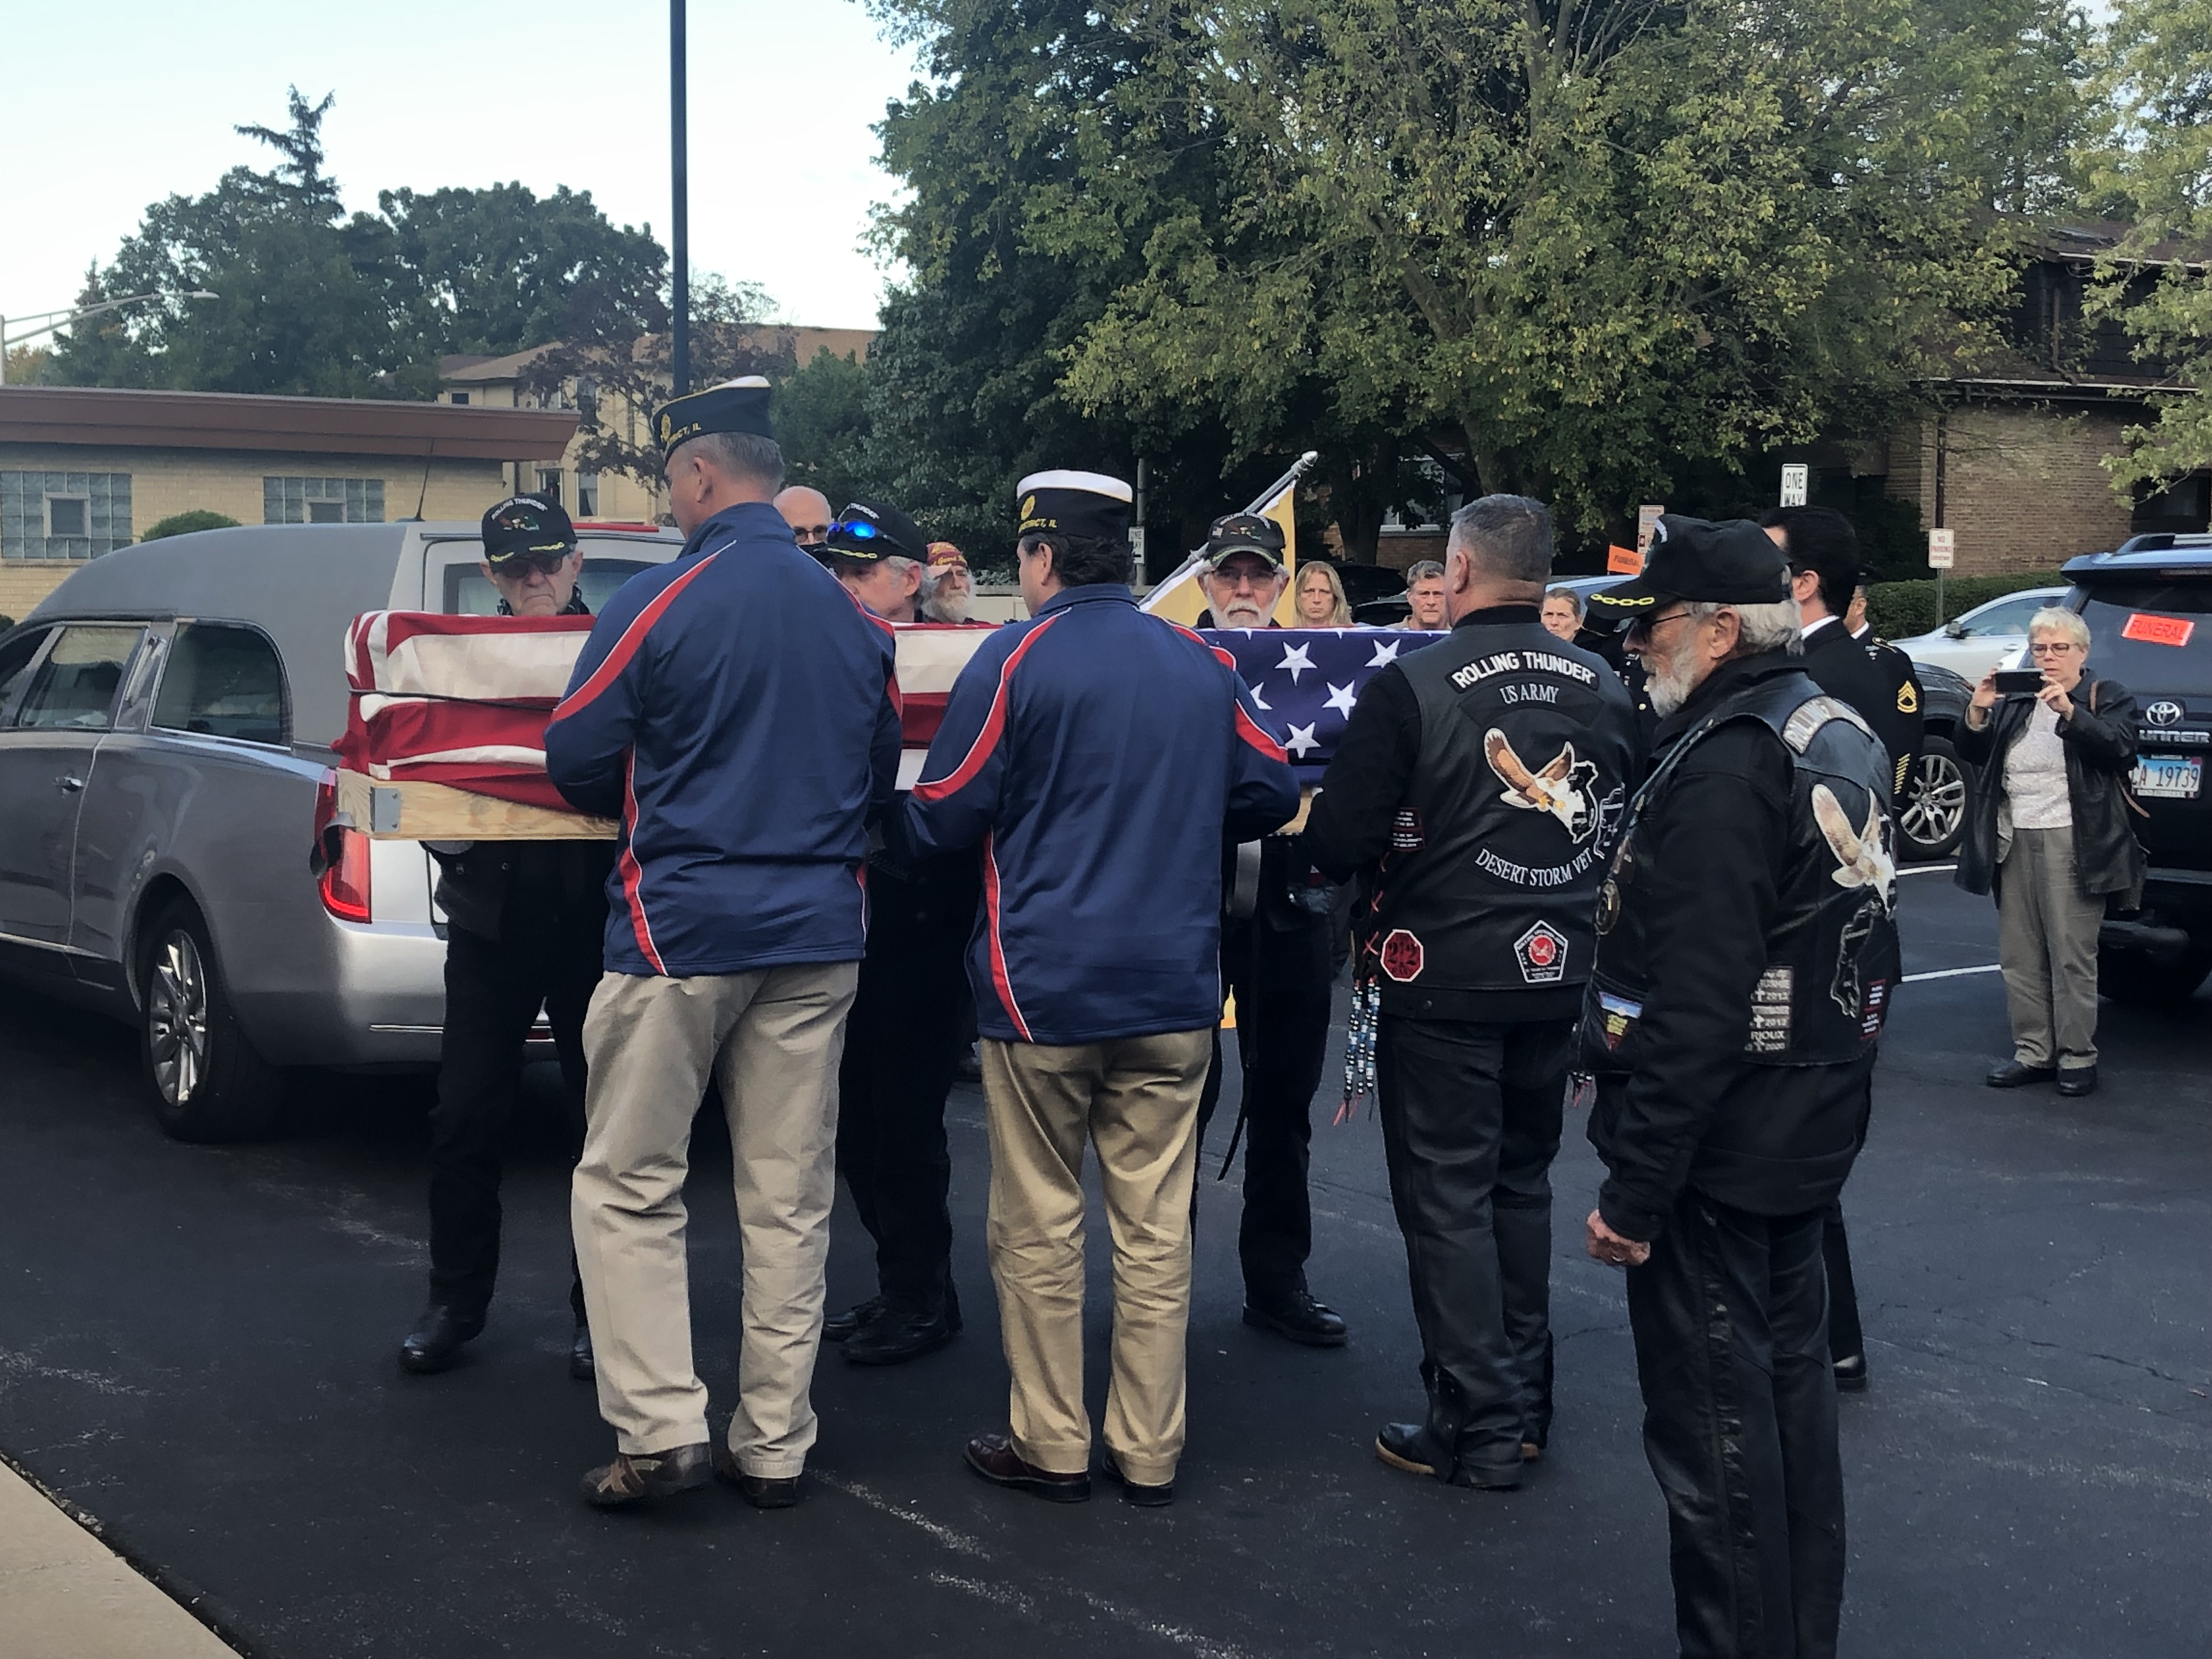 Seventy-six years after being killed in World War II, the remains of U.S. Army Air Forces Sgt. Francis Wiemerslage returned home Friday. Wiemerslage, a native of suburban River Grove, was a 20-year-old ball turret gunner on a B-17G Flying Fortress bombing during a mission over Dresden on March 2, 1945, when the plane was shot down by enemy fighters. Wiemerslage remained unaccounted for until August, when his remains were confirmed.